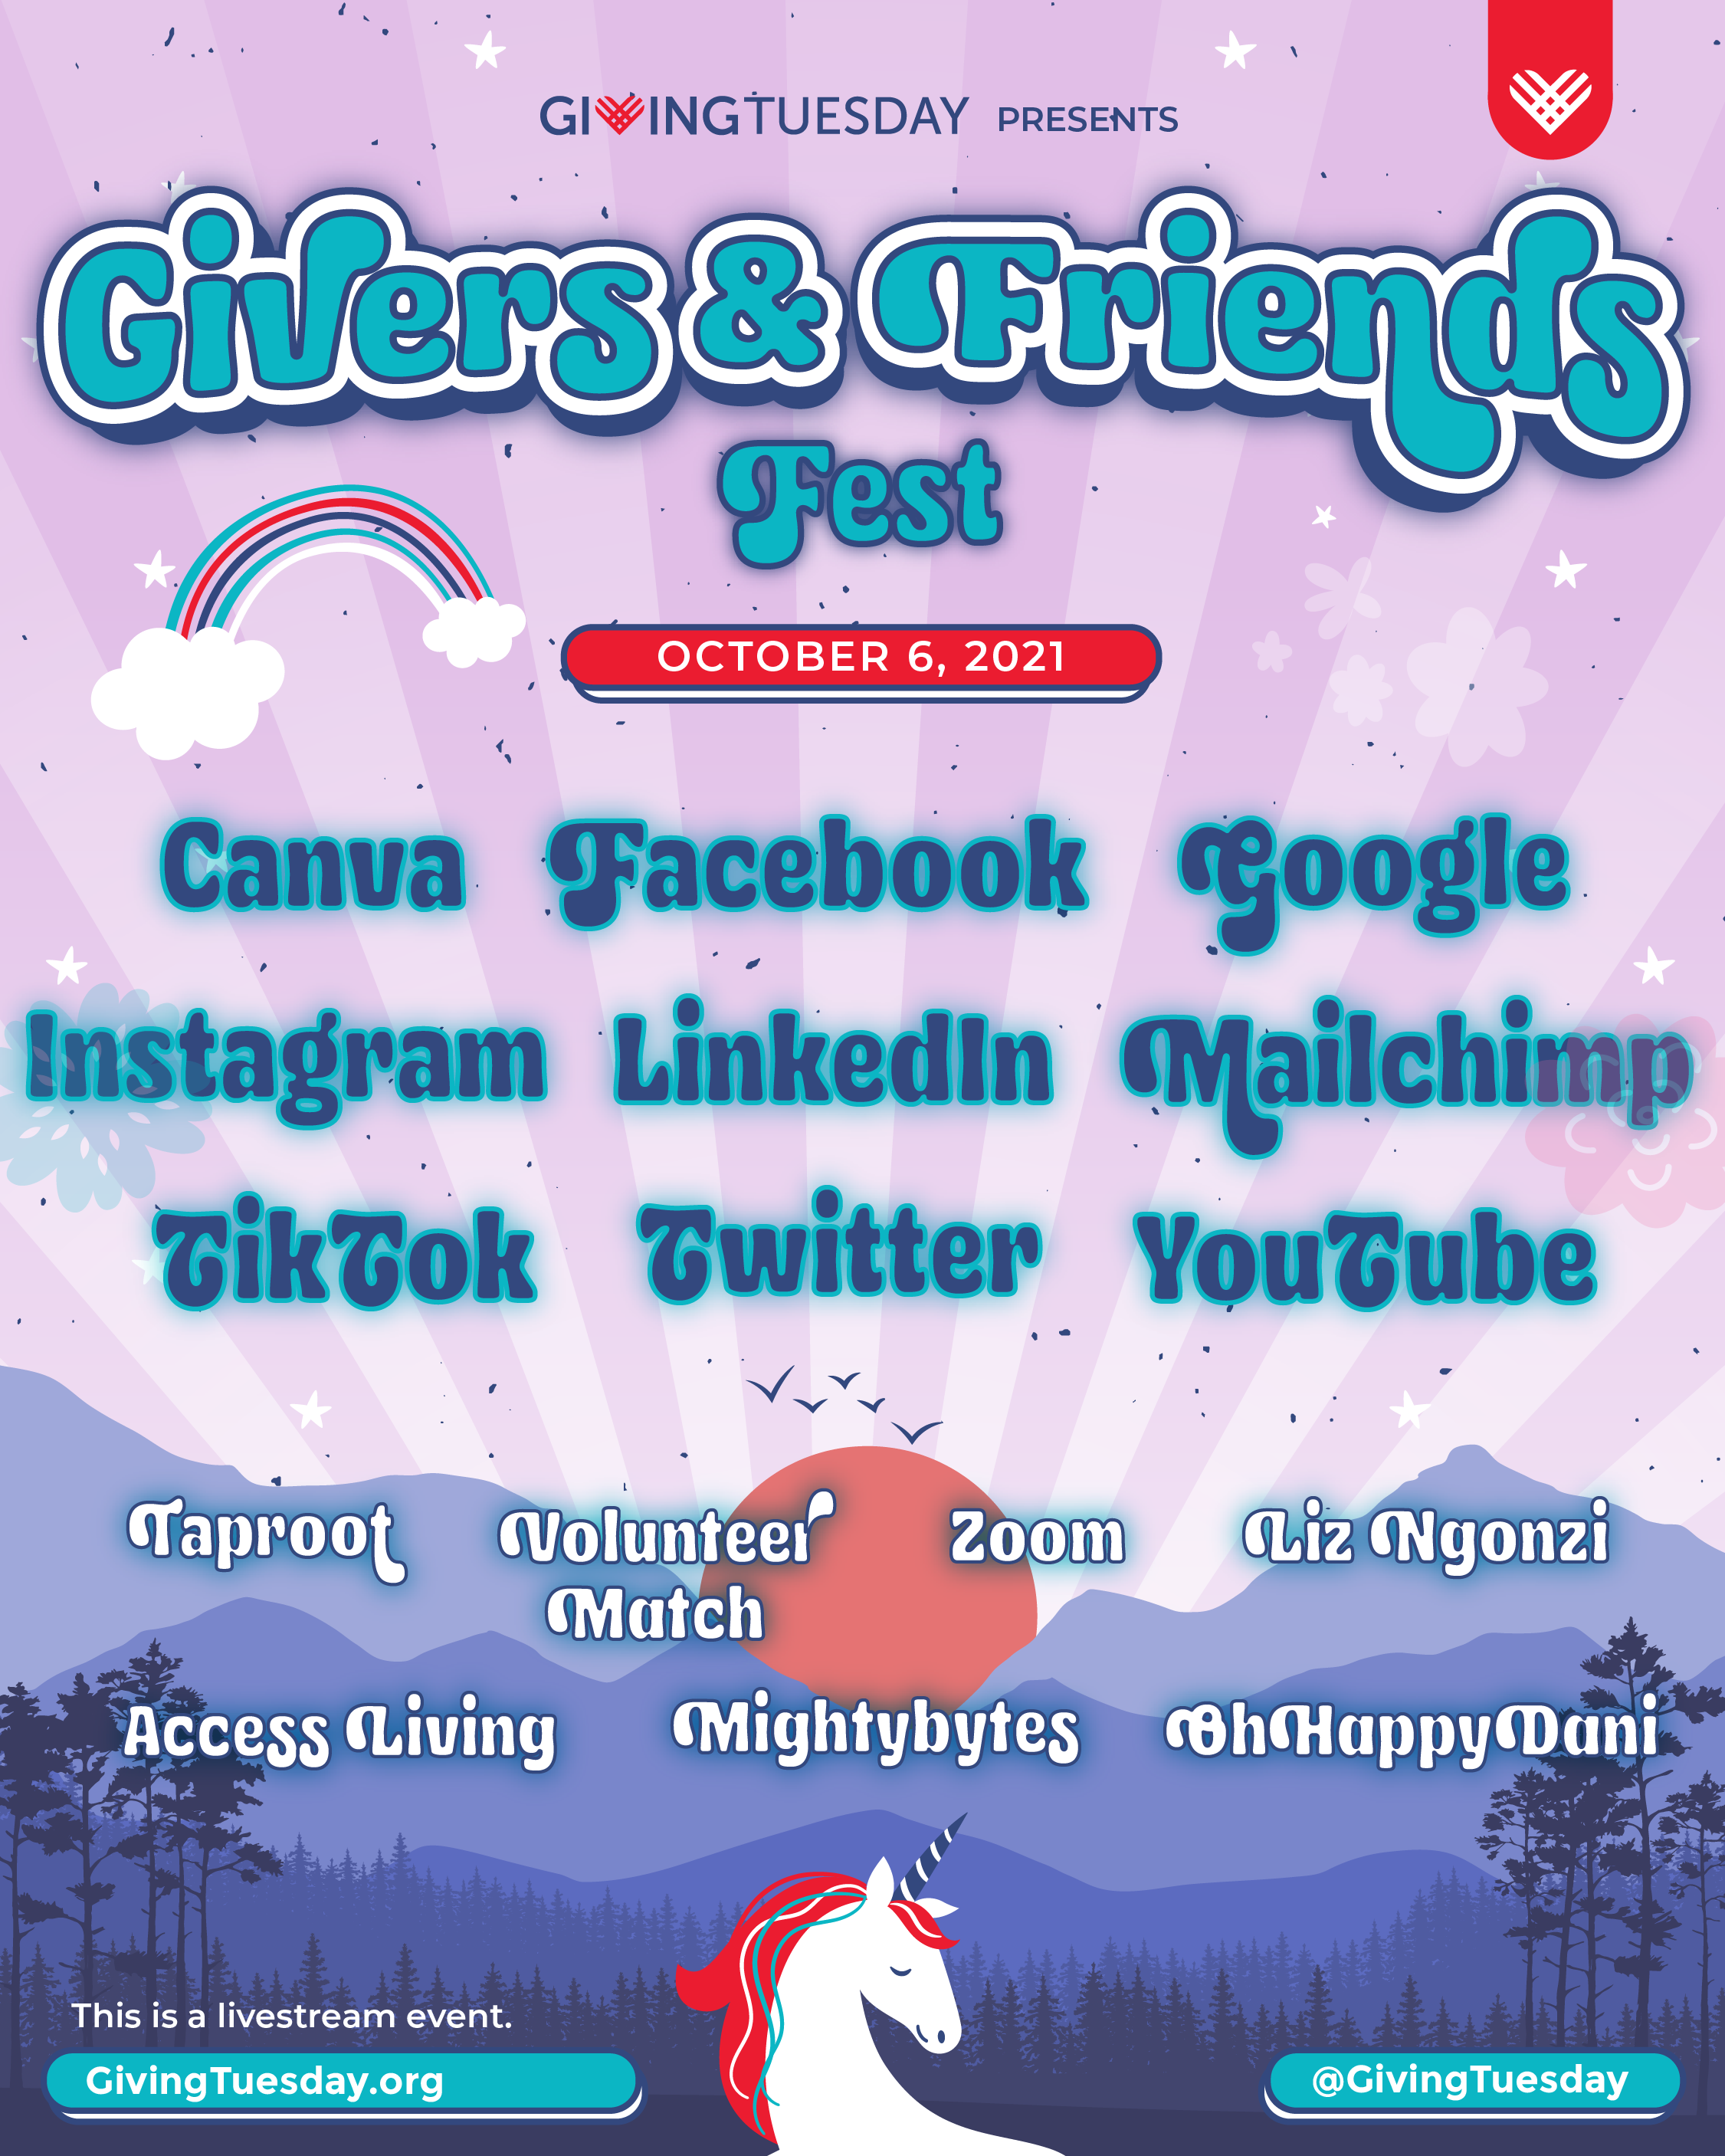 """A concert style poster. The background is pink with purple mountains below and evergreen trees. A majestic unicorn peeks up from the bottom edge. The text reads: """"GivingTuesday presents: Givers and Friends Fest--- Canva, Facebook, Google, Instagram, LinkedIn, Mailchimp, TikTok, Twitter, YouTube -- Taproot, VolunteerMatch, Zoom, Liz Ngonzi, Access Living, Mightybytes, the GivingTuesday team. This is a livestream event @ GivingTuesday.org and all of GivingTueday's social media channels"""""""